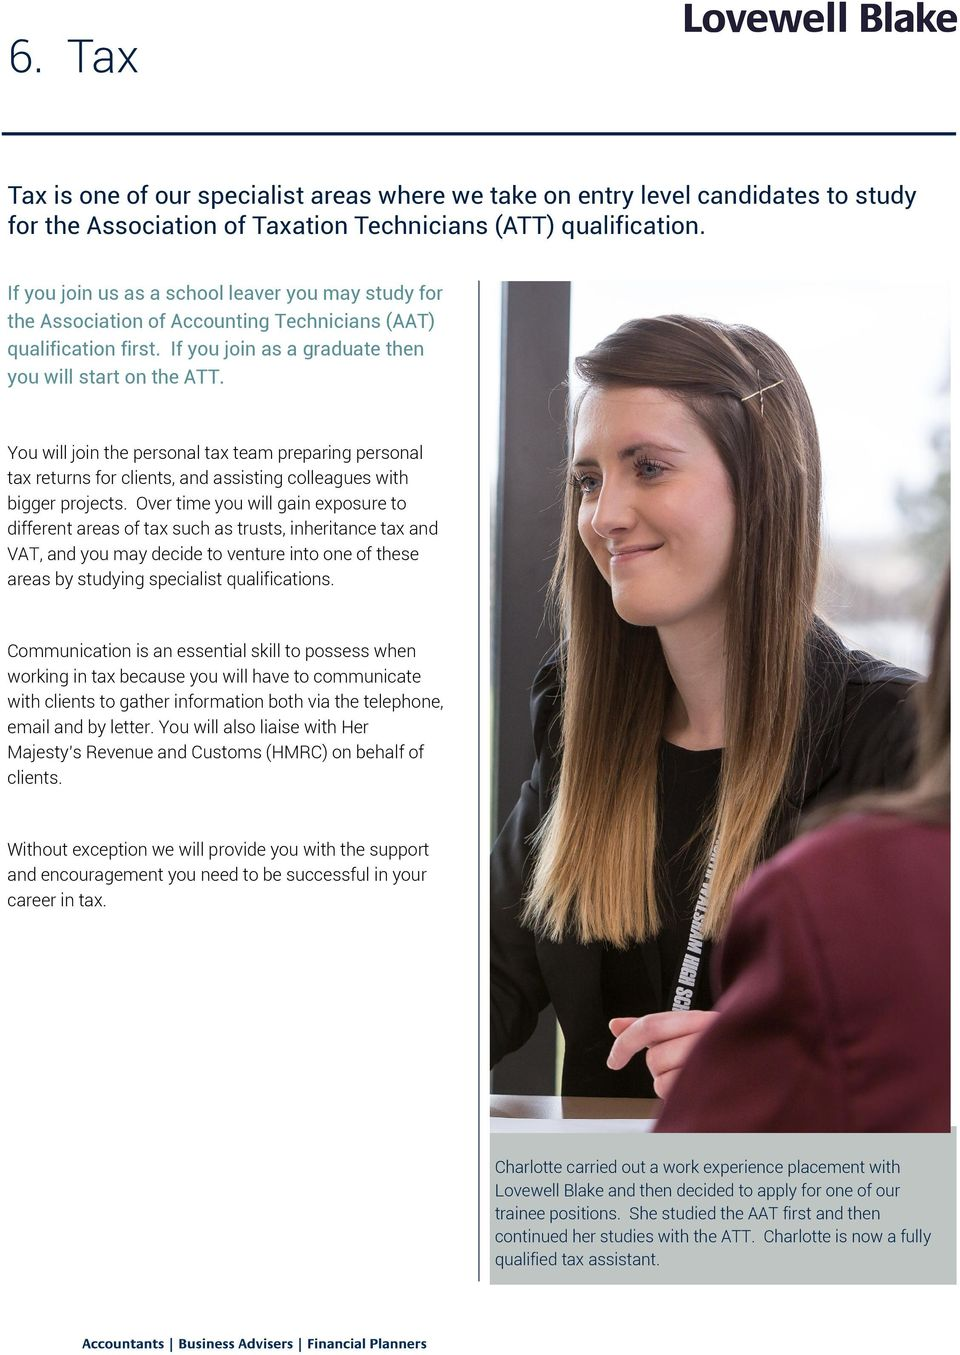 If you join us as a school leaver you may study for the Association of Accounting Technicians (AAT) qualification first. If you join as a graduate then you will start on the ATT.